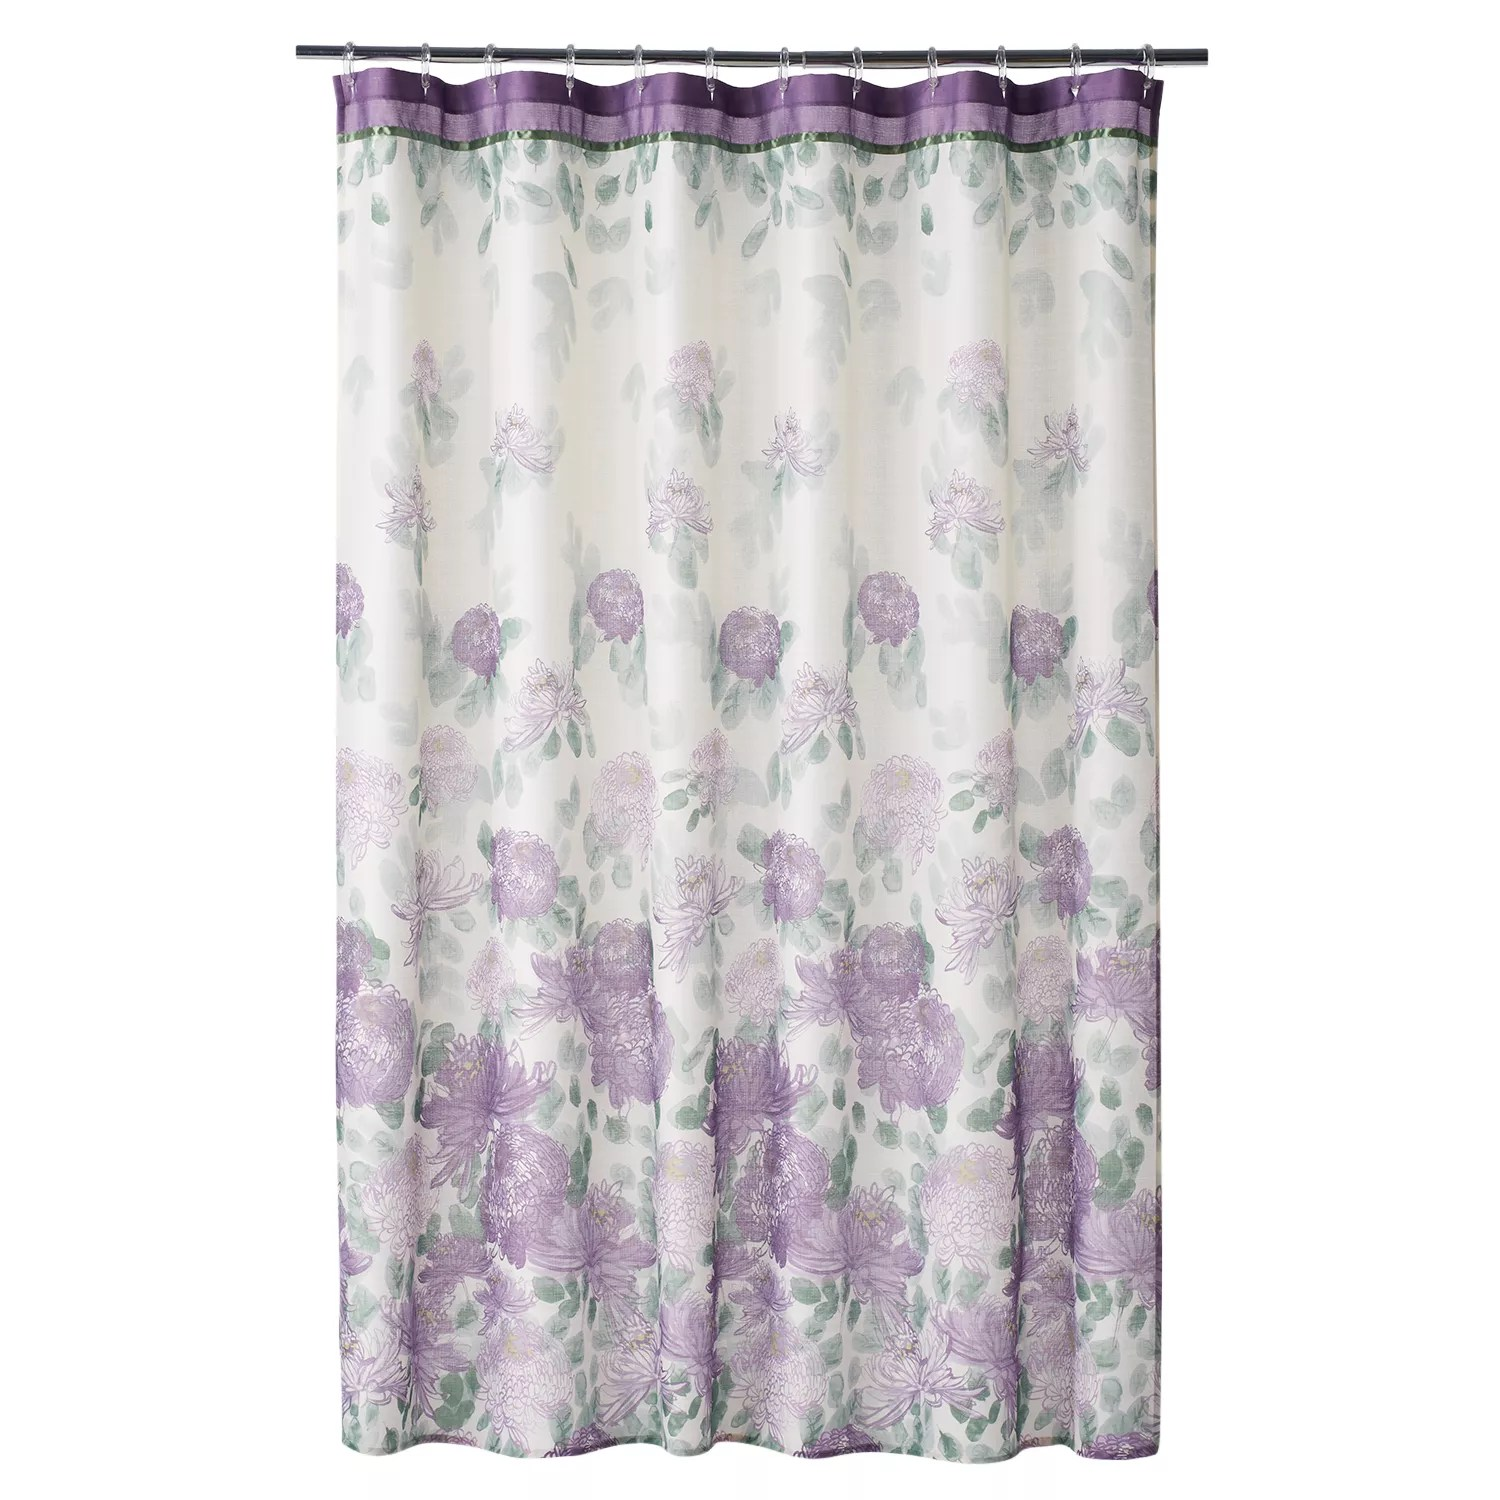 small kitchen appliances stand alone cabinets best deals home classics® francesca fabric shower curtain